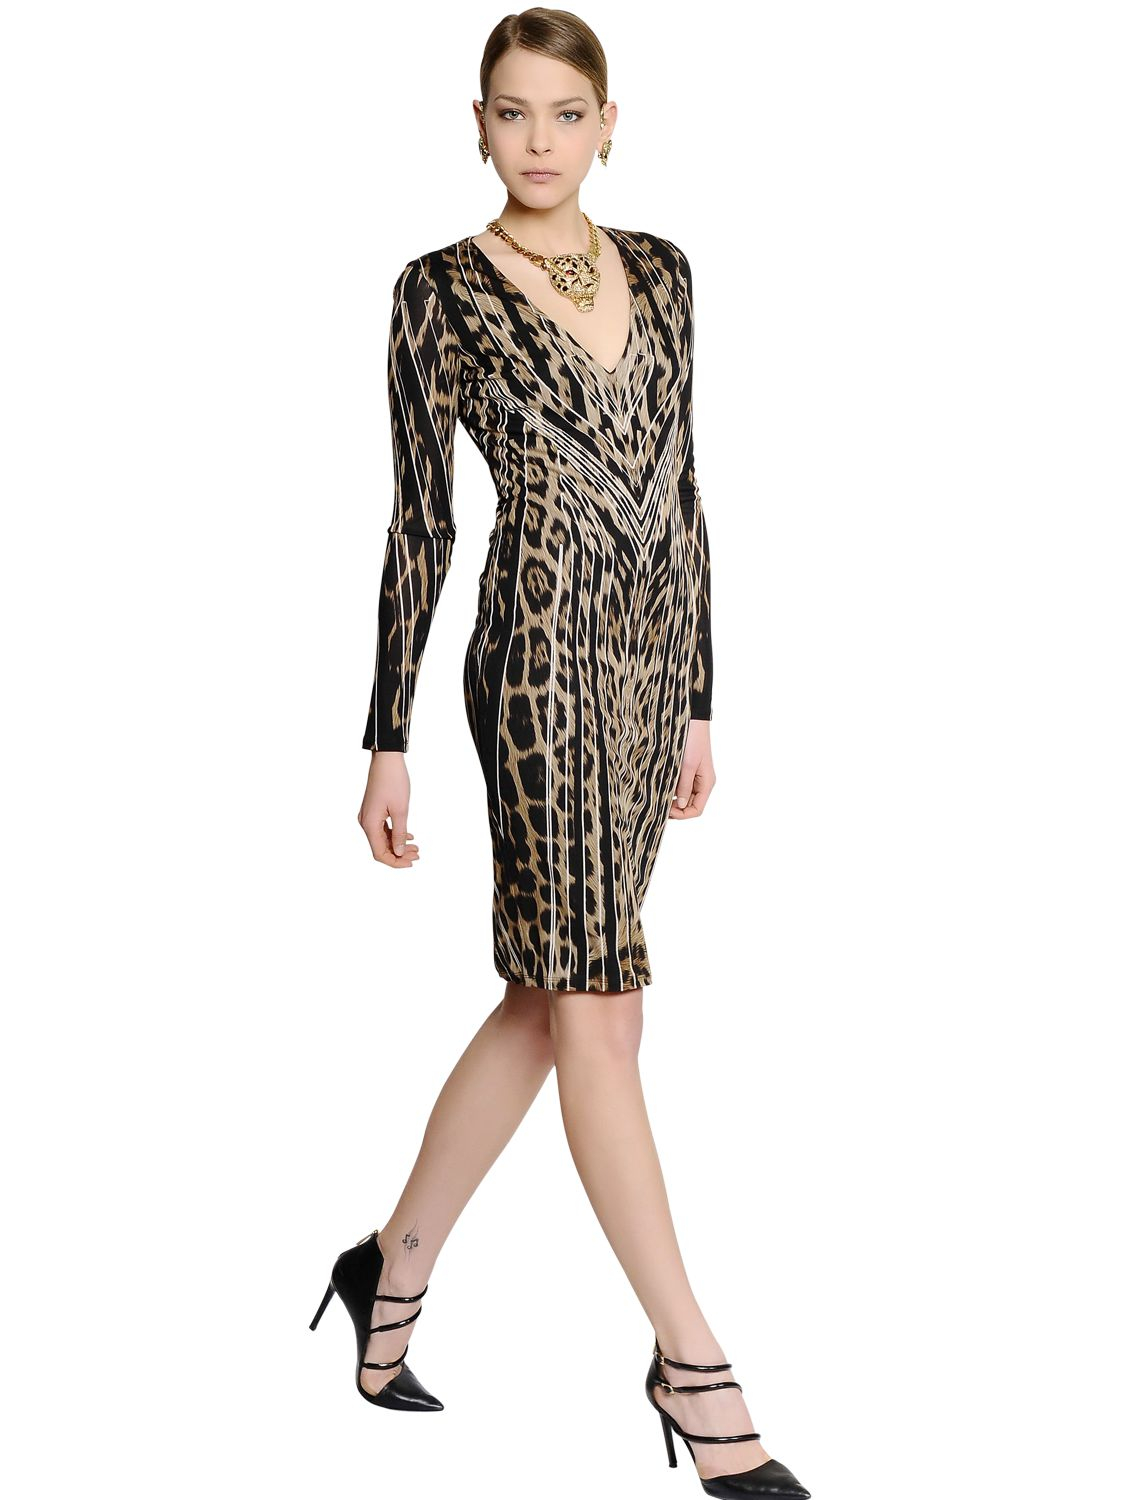 Leopard-printed jersey dress Roberto Cavalli Wholesale Price Manchester Free Shipping Fast Delivery Latest Collections Online Finishline Sale Online 3FvPx0